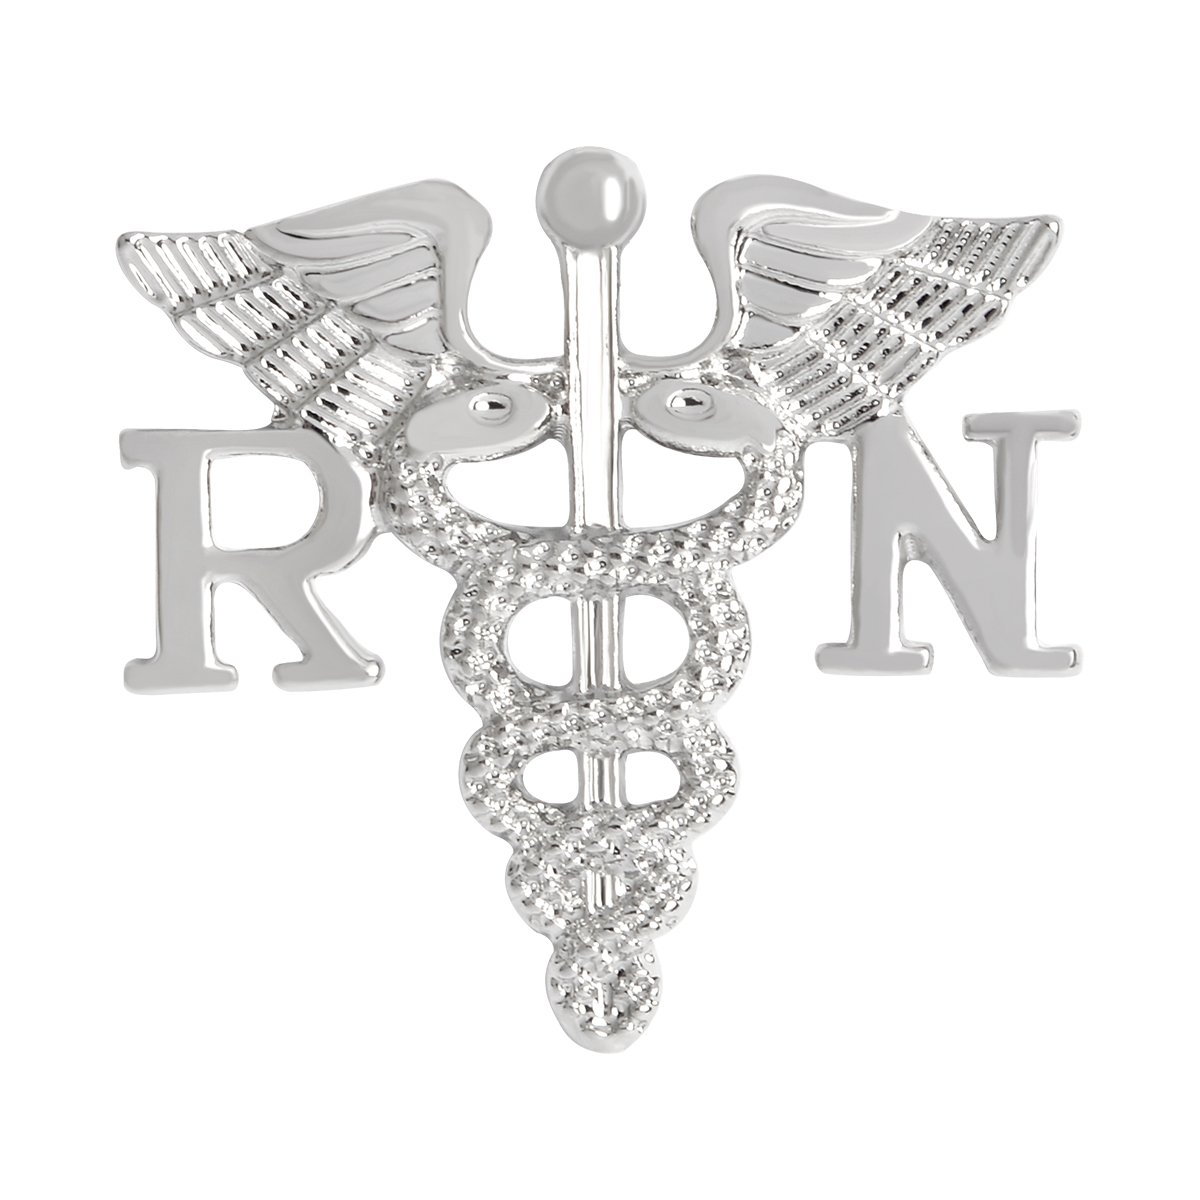 QIHOO Caduceus Angel Nursing Themed Charm Brooch Pin B0756TYRF7_US